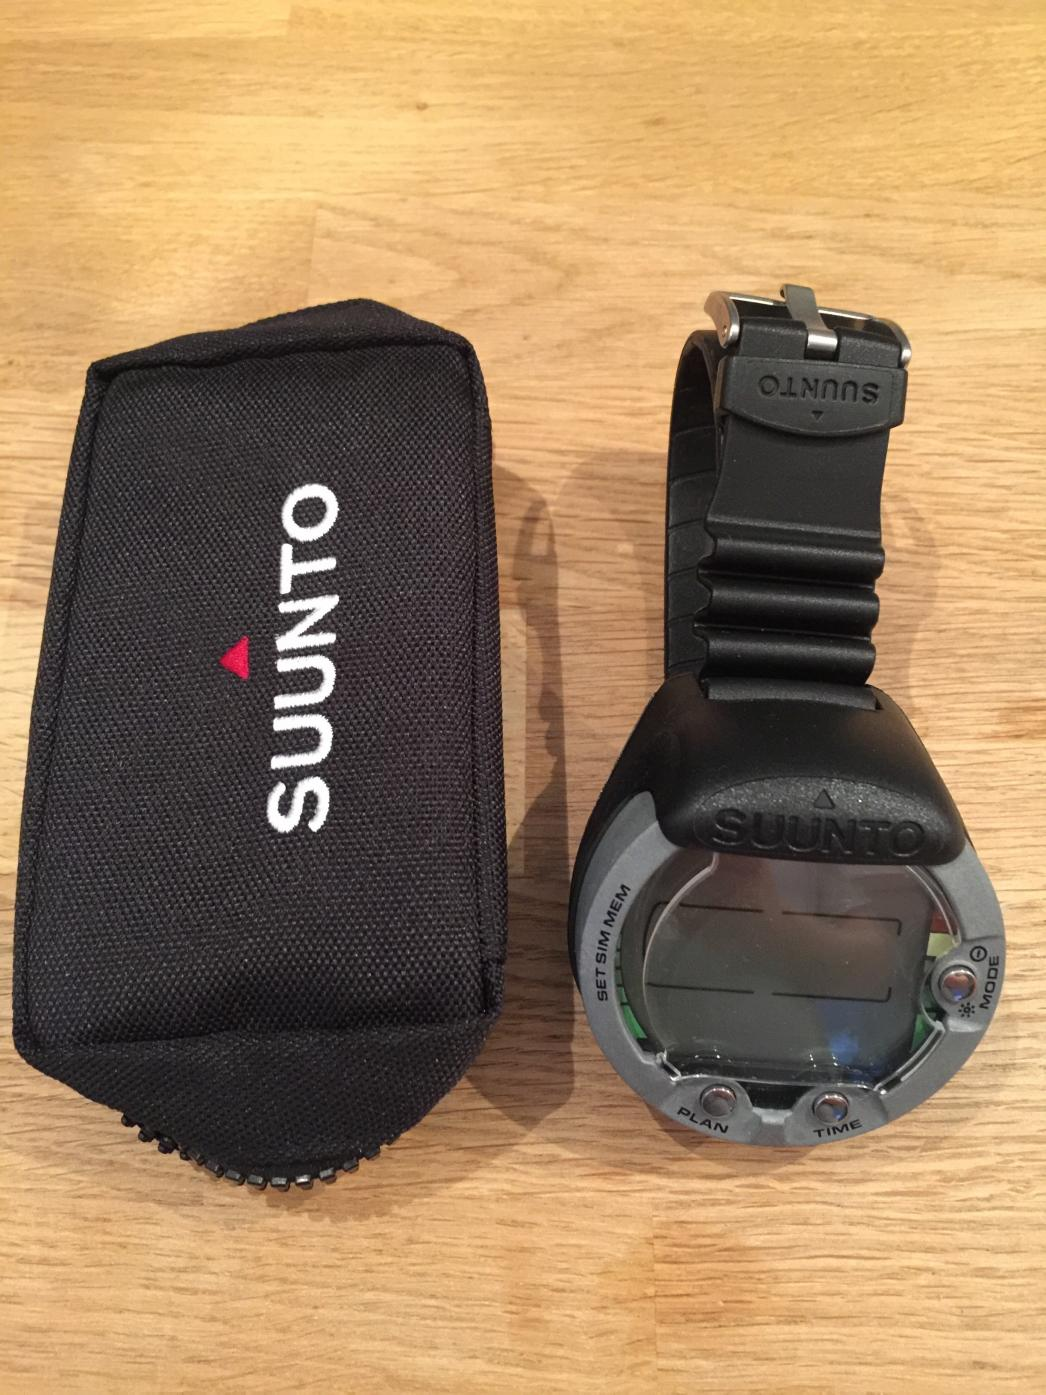 Click image for larger version.  Name:suunto.jpg Views:78 Size:193.6 KB ID:49837